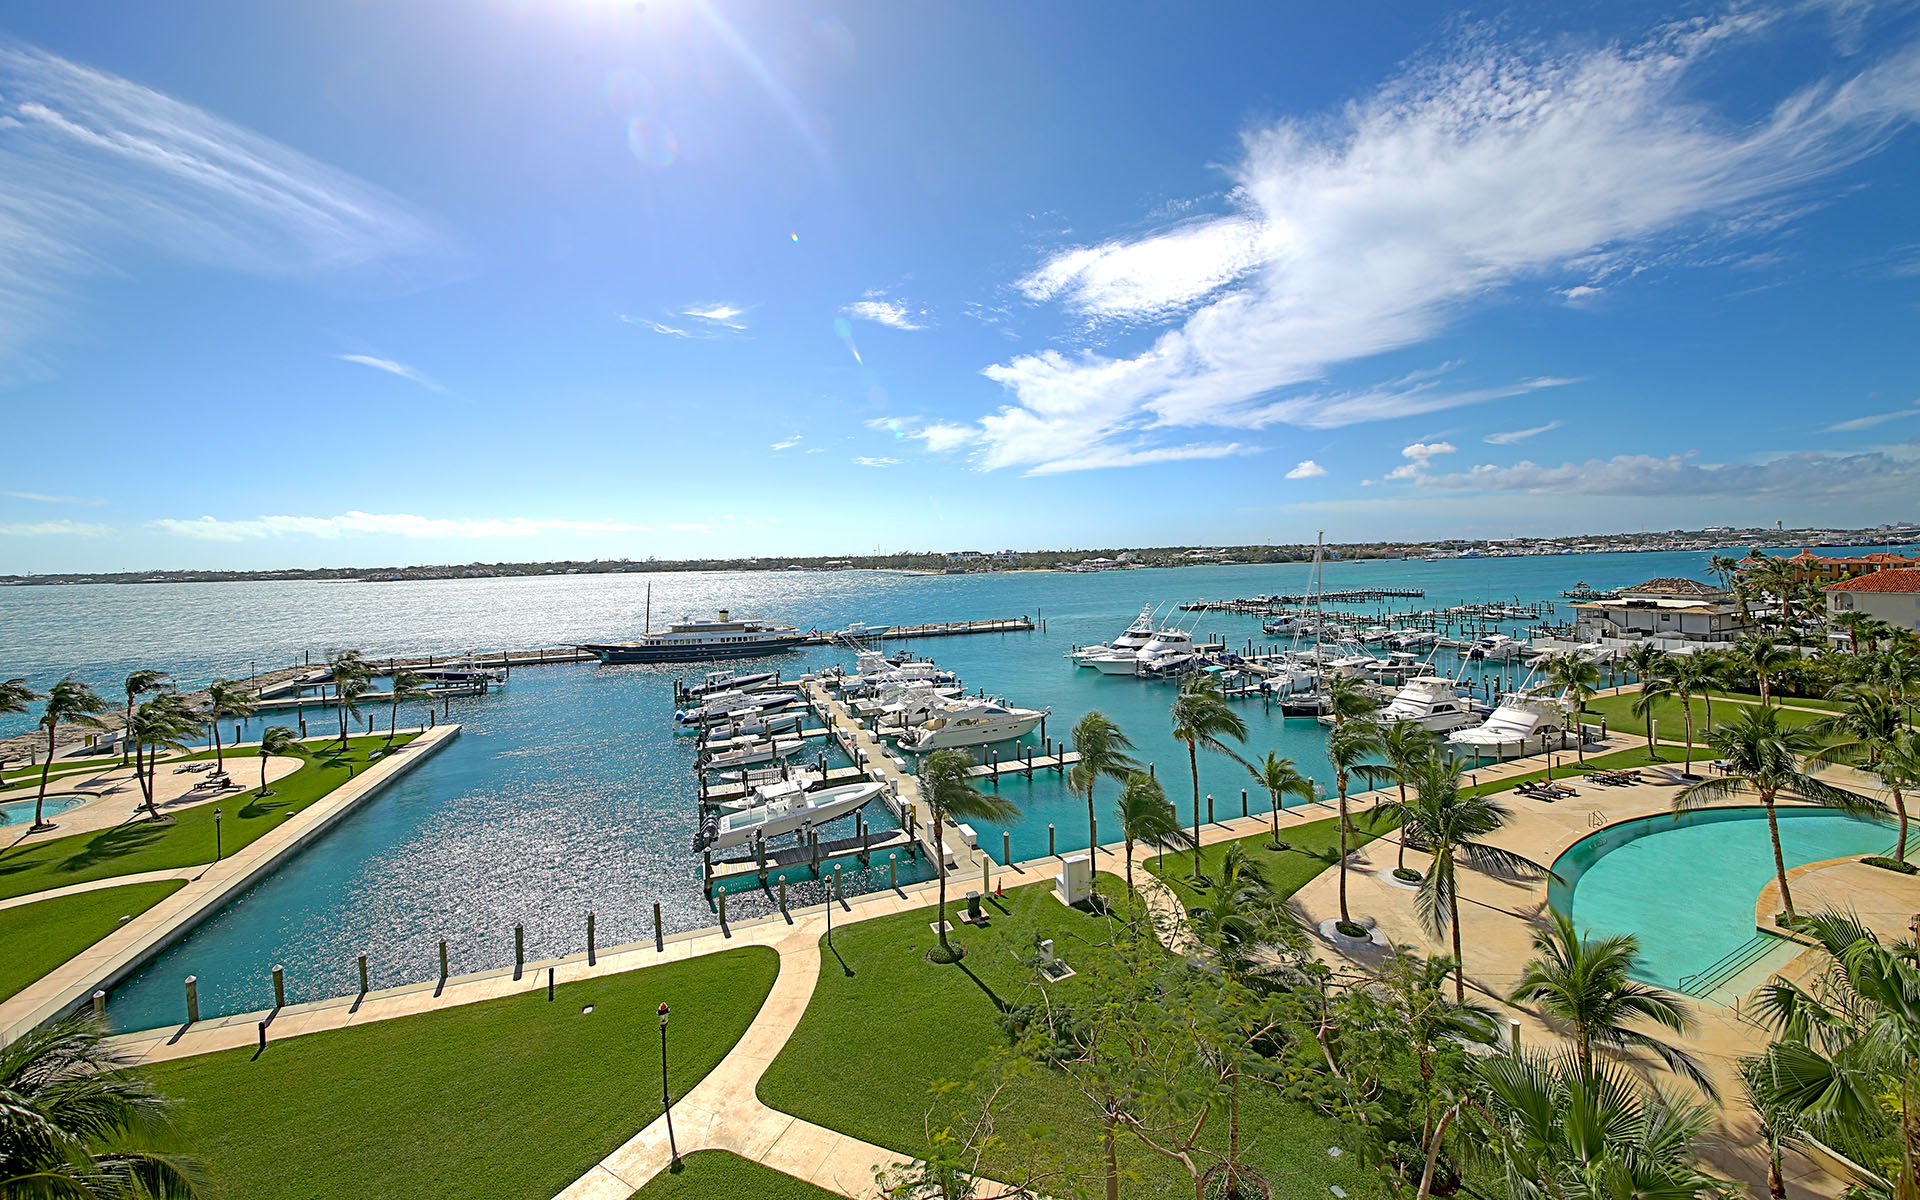 Co-op / Condo for Sale at Ocean Club Residences and Marina - 5th floor condo on Paradise Island MLS 29028 Ocean Club Estates, Paradise Island, Nassau And Paradise Island Bahamas